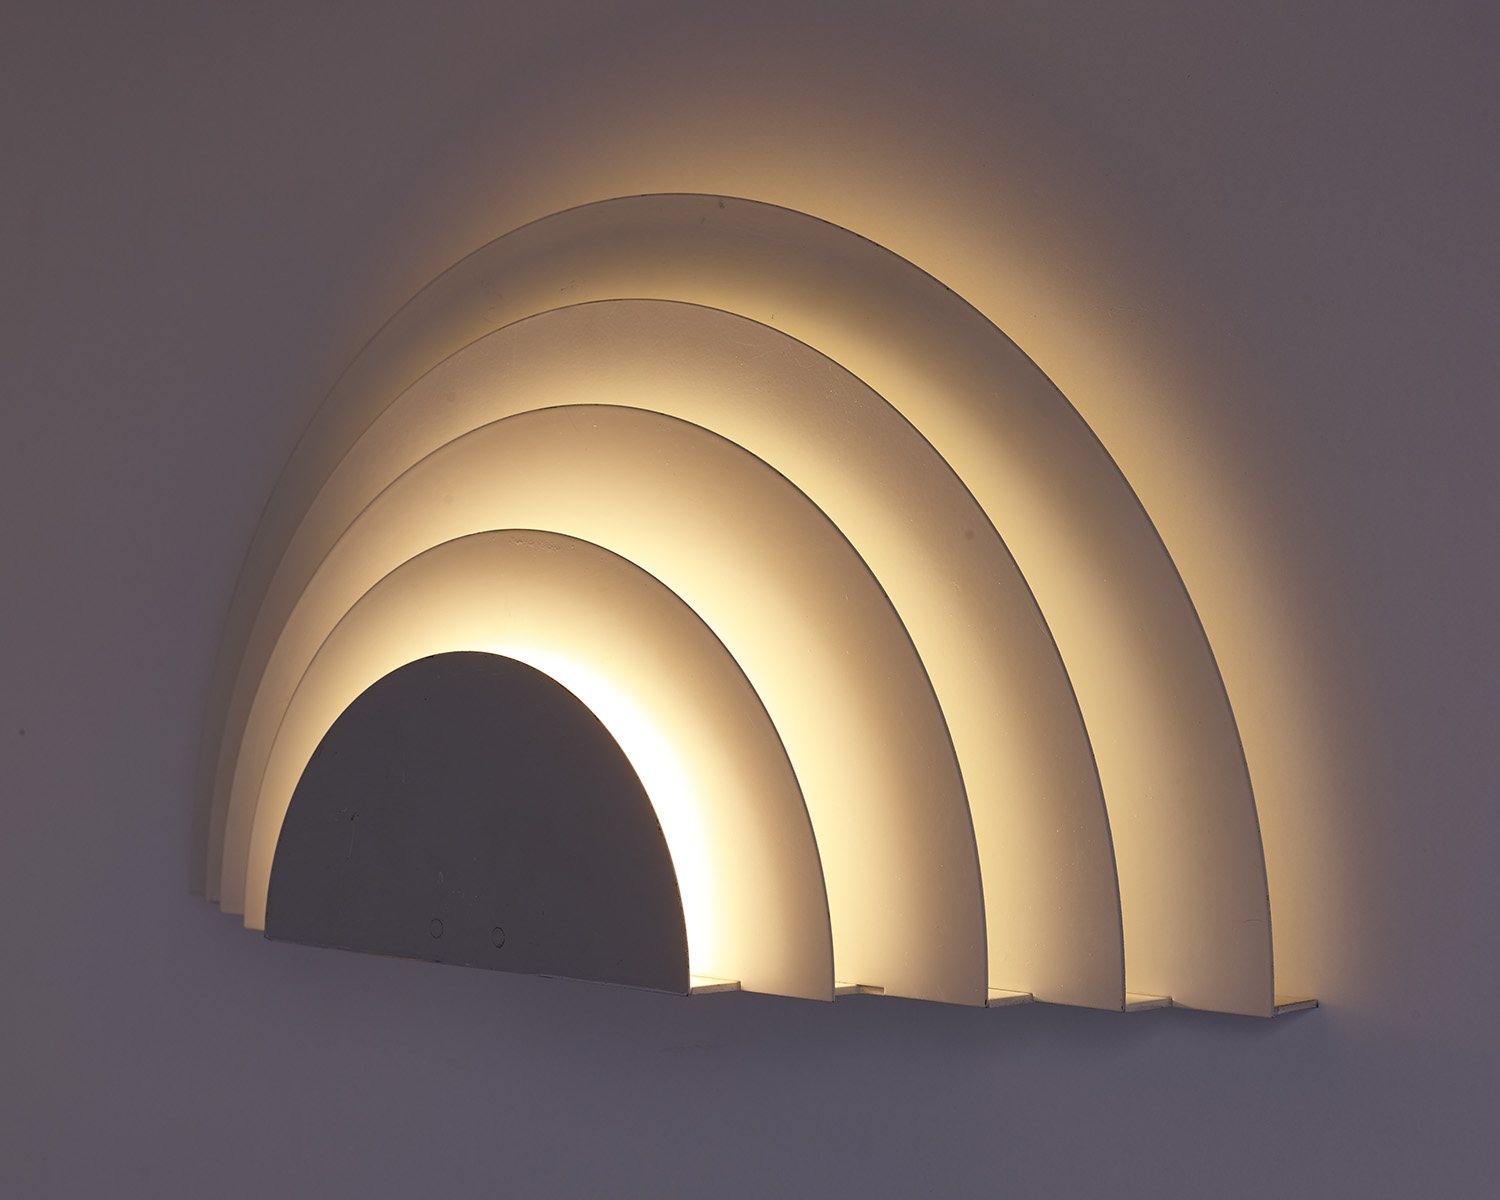 wall-lights-meander-by-cesare-casati-and-emanuele-ponzio-image-02